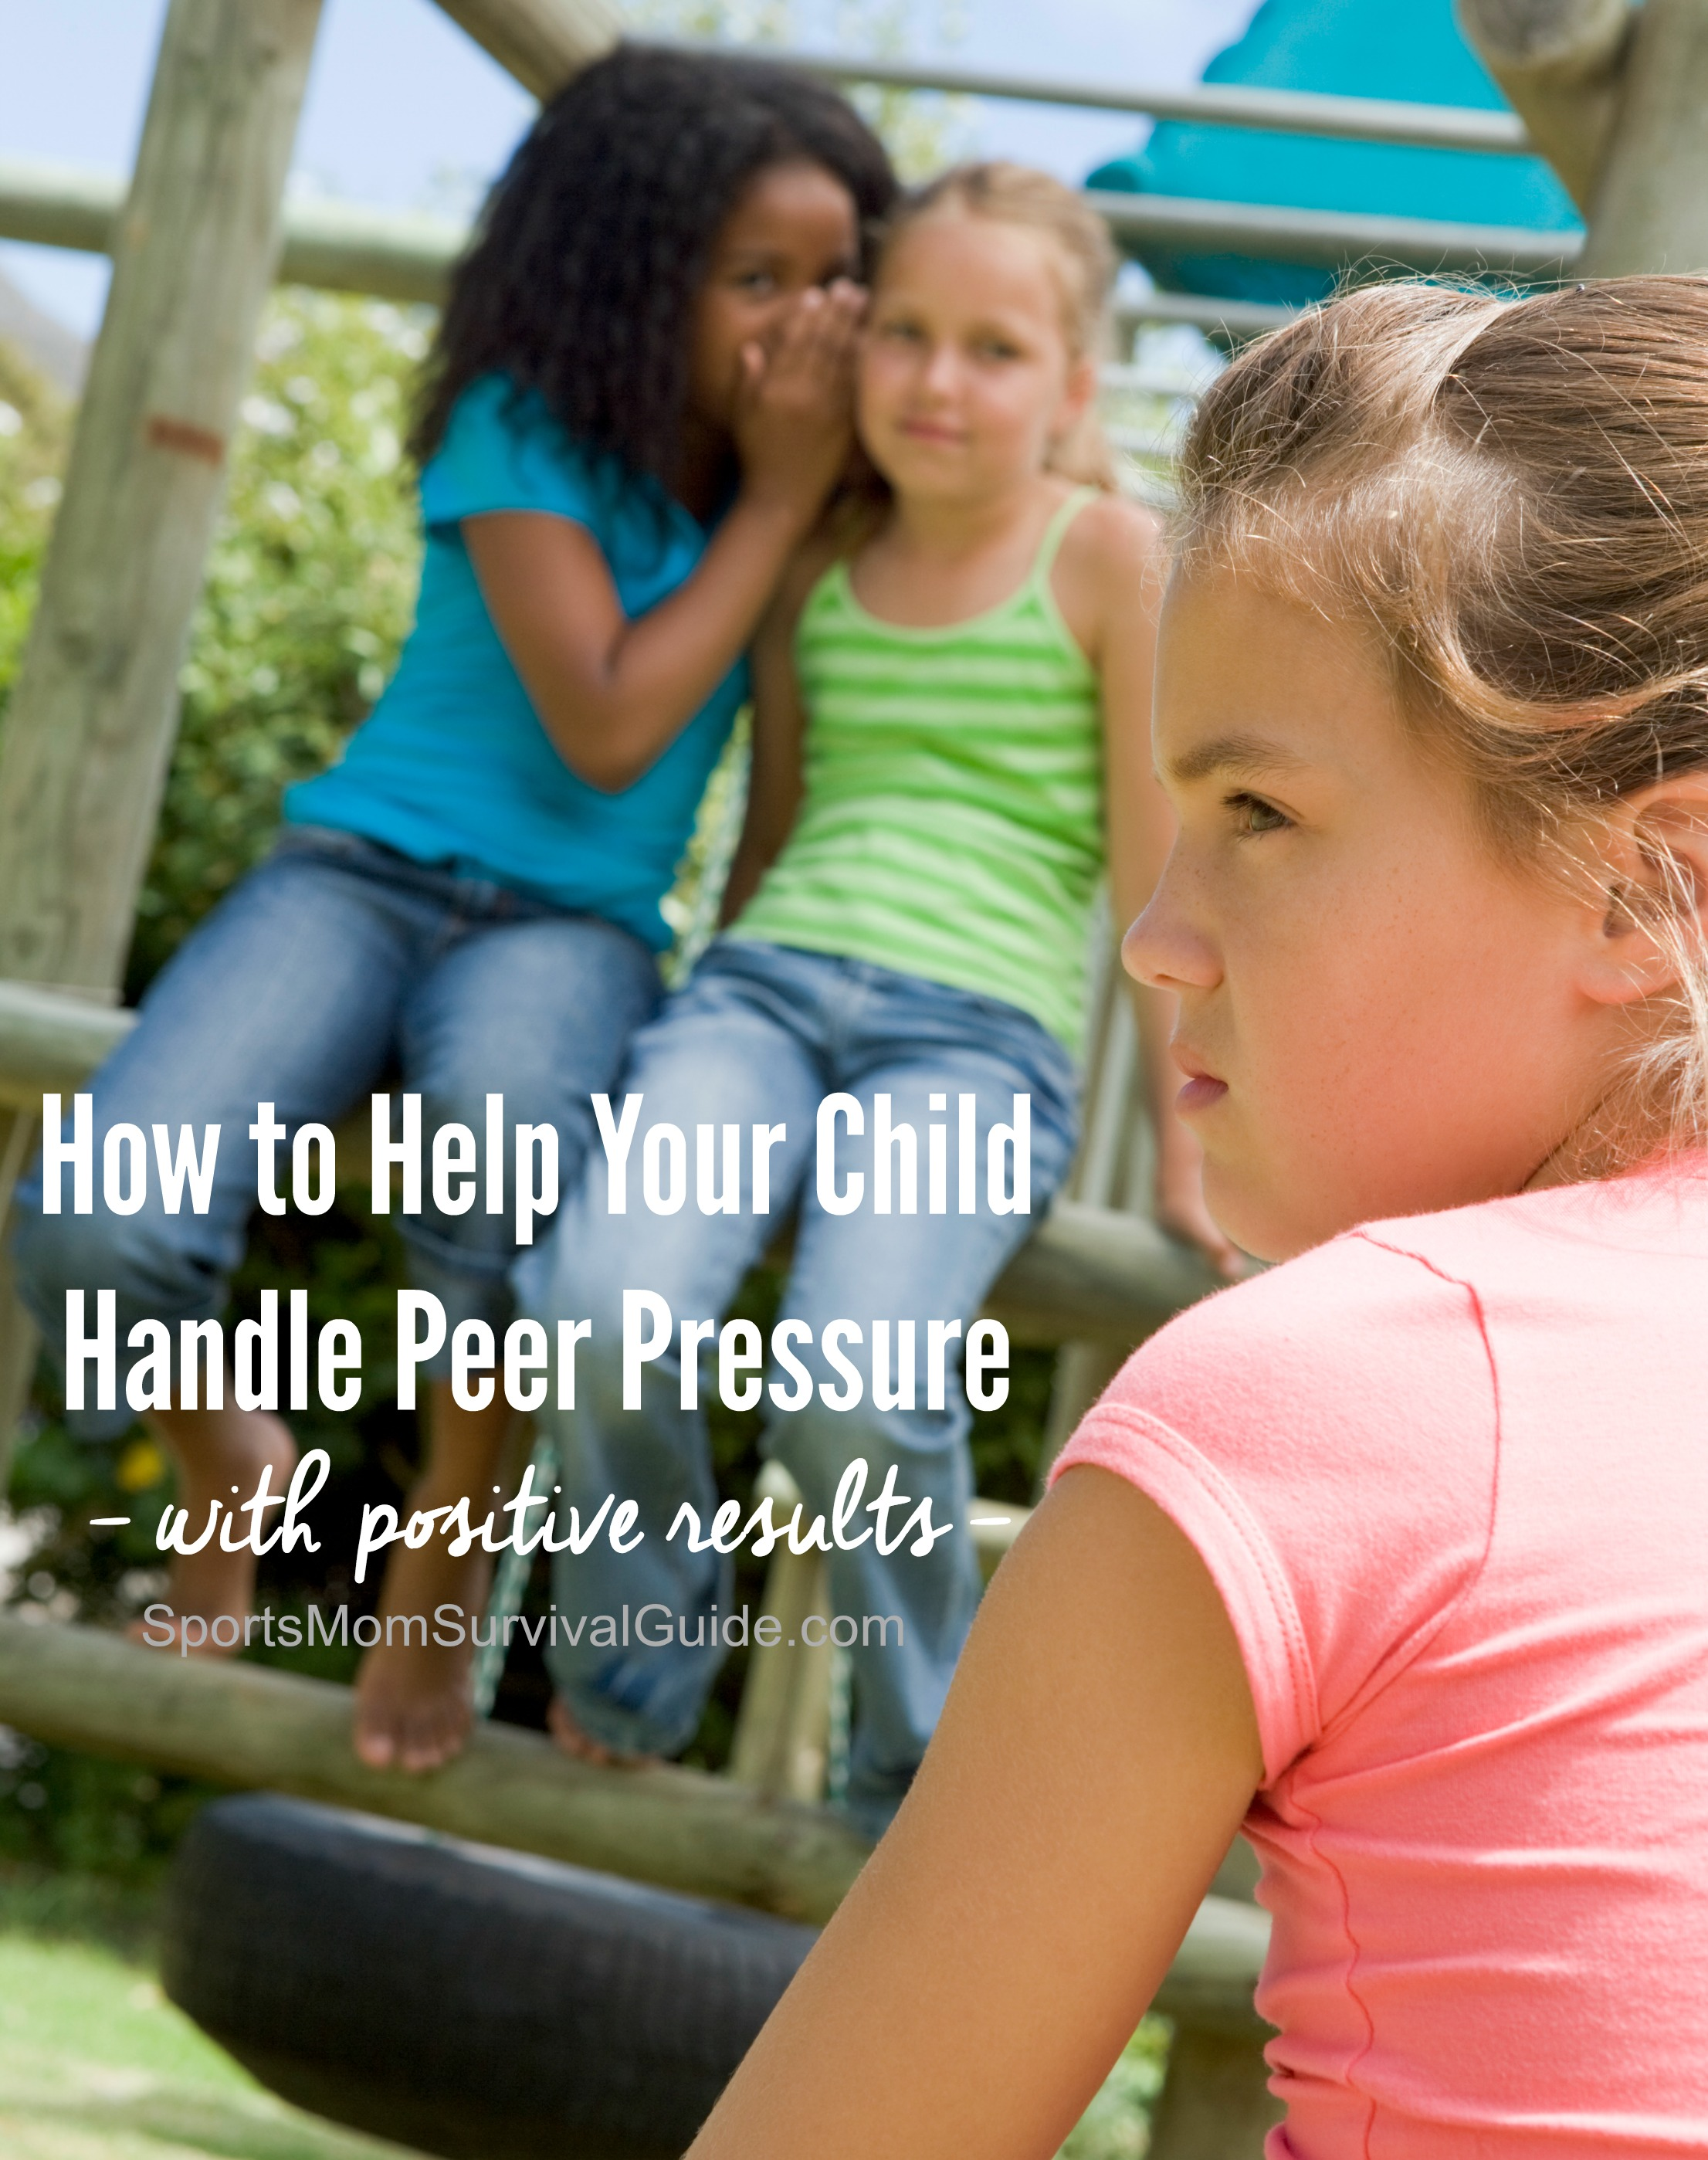 How To Help Your Child Handle Peer Pressure With Positive